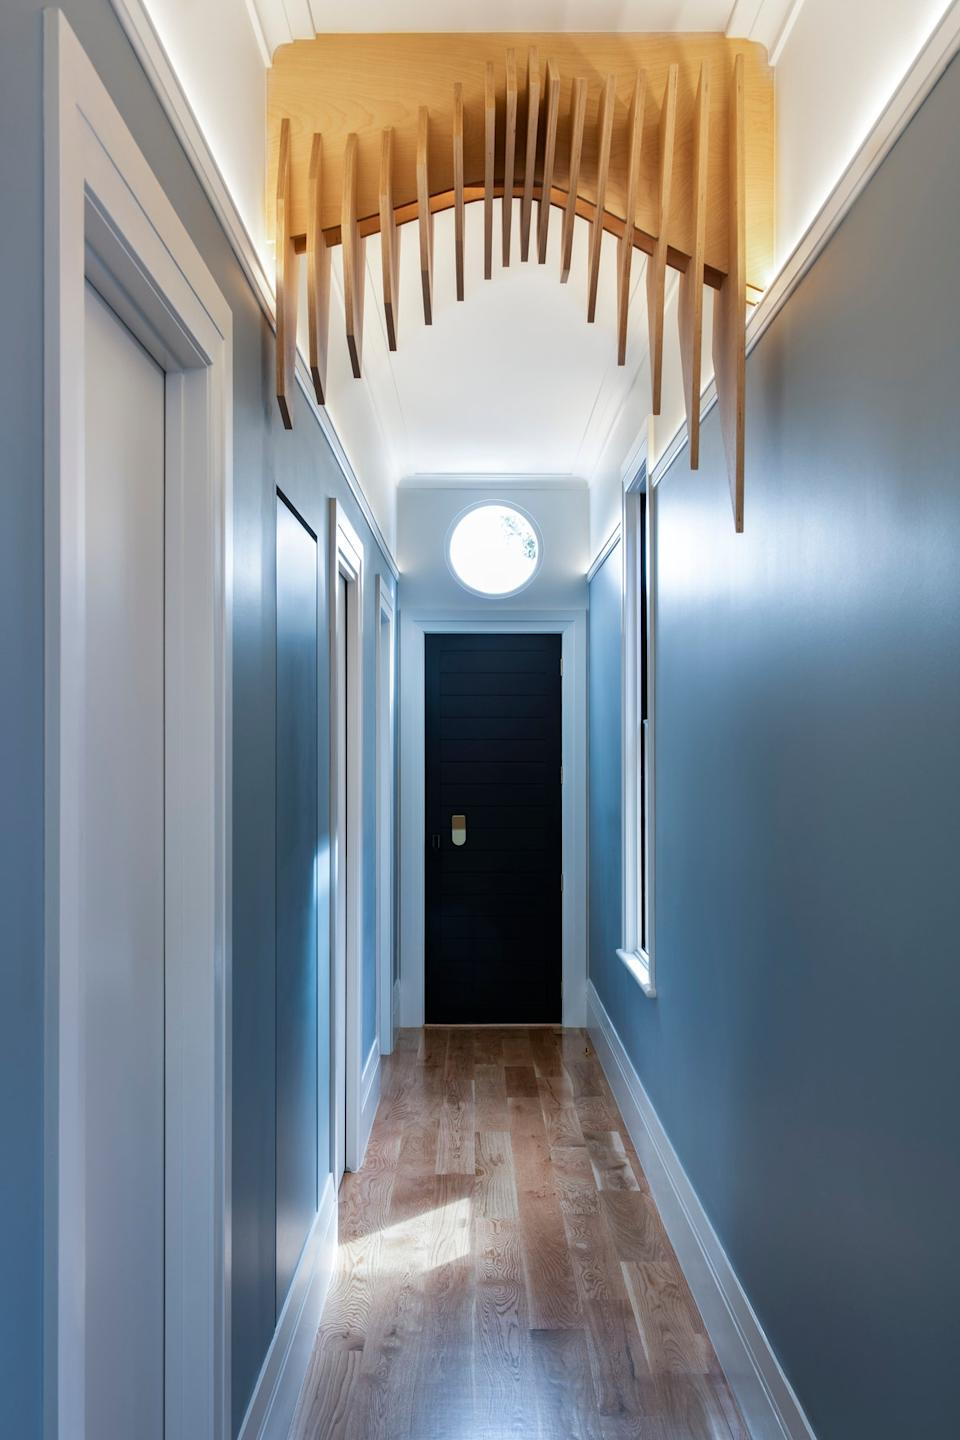 "<div class=""caption""> <strong>AFTER:</strong> The hallway is painted a light blue that continues into a front bedroom—this is where Nathan and Iman's families will stay when they come to visit. </div>"